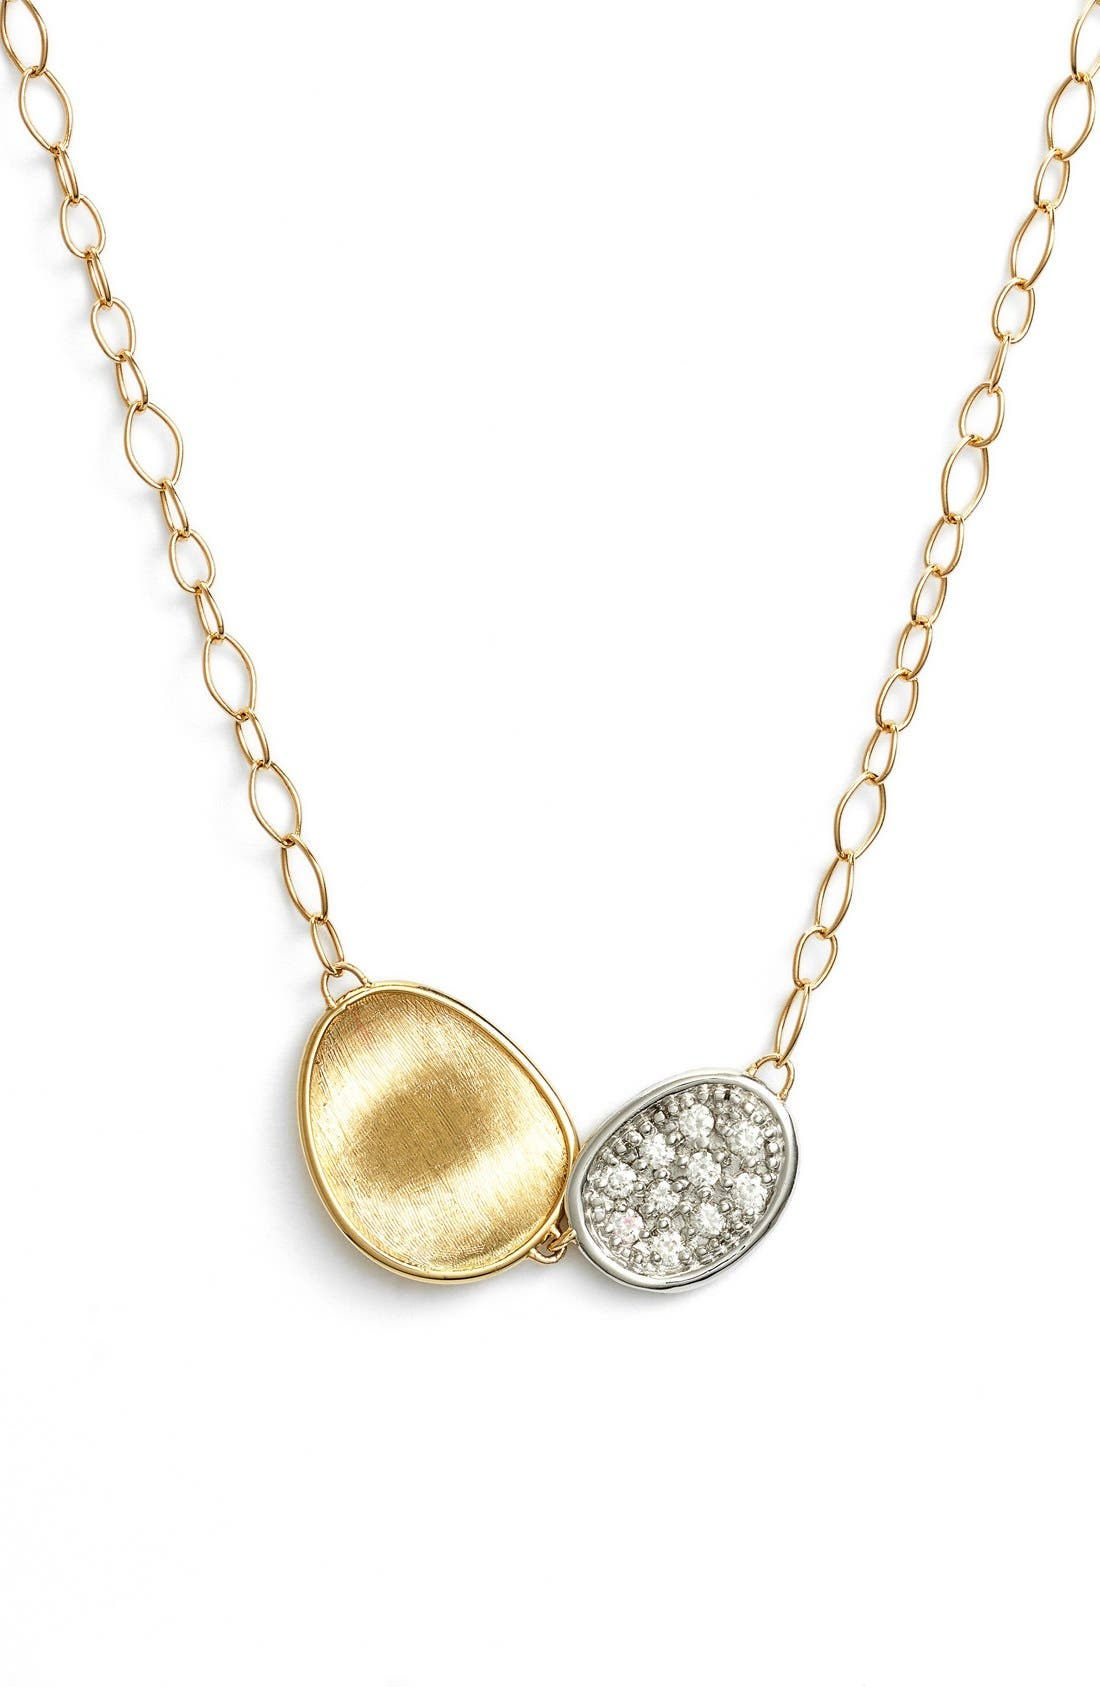 Lunaria Pendant Necklace,                         Main,                         color, YELLOW GOLD